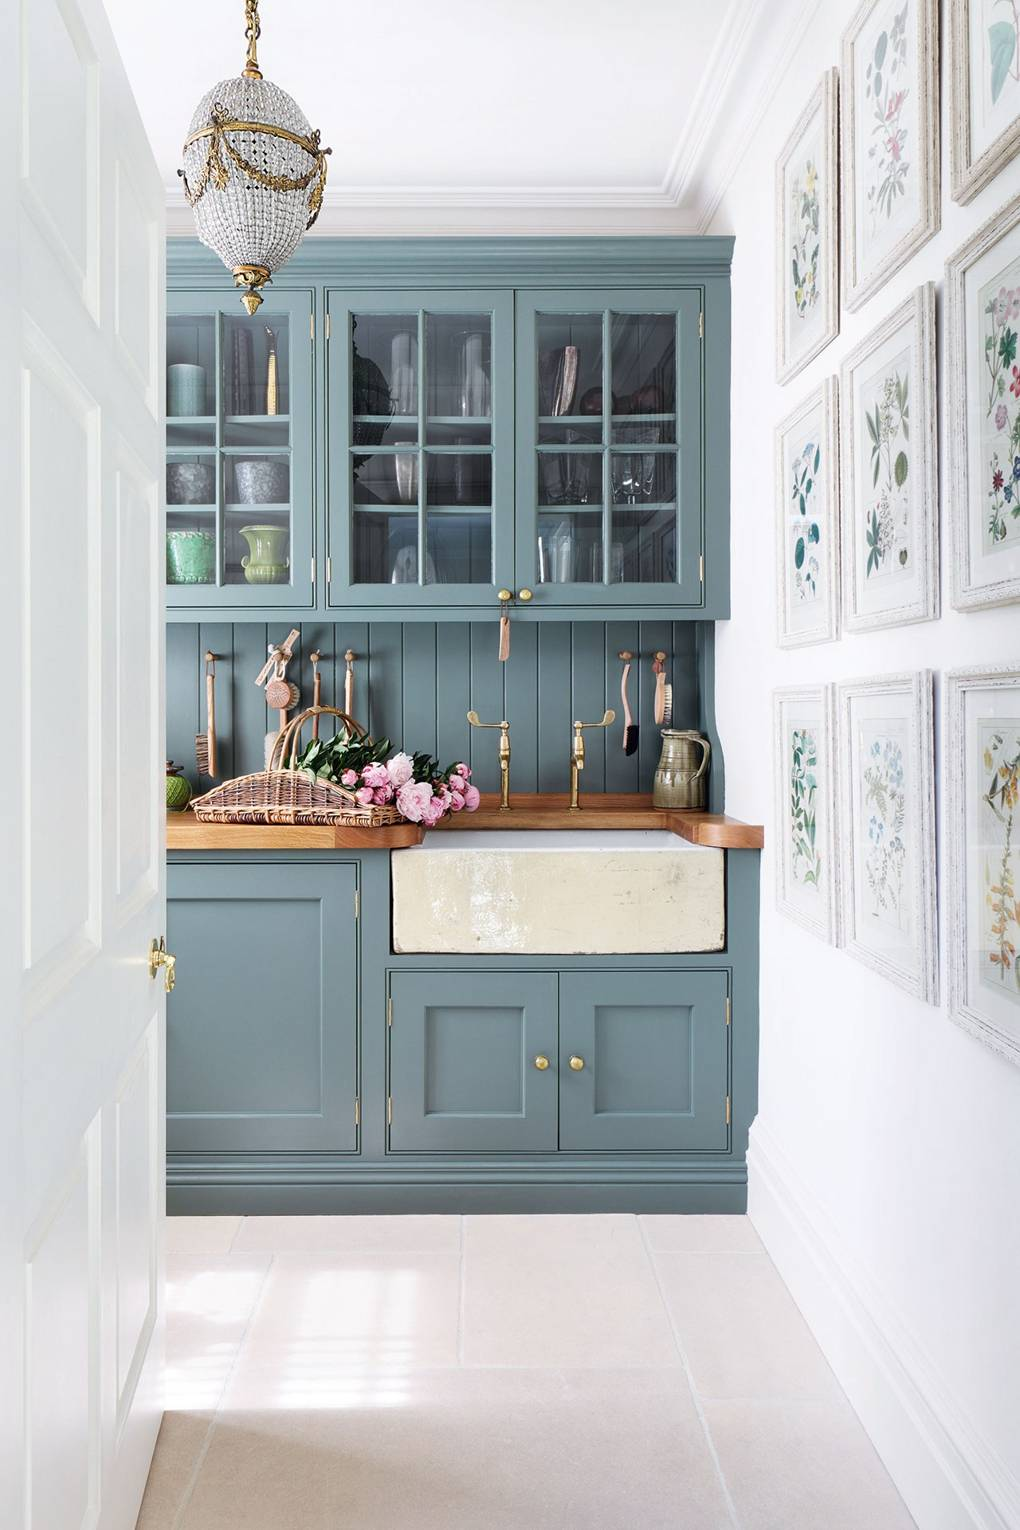 IMAGE: via House and Garden feat. paint color 'Card Room Green' from Farrow and Ball